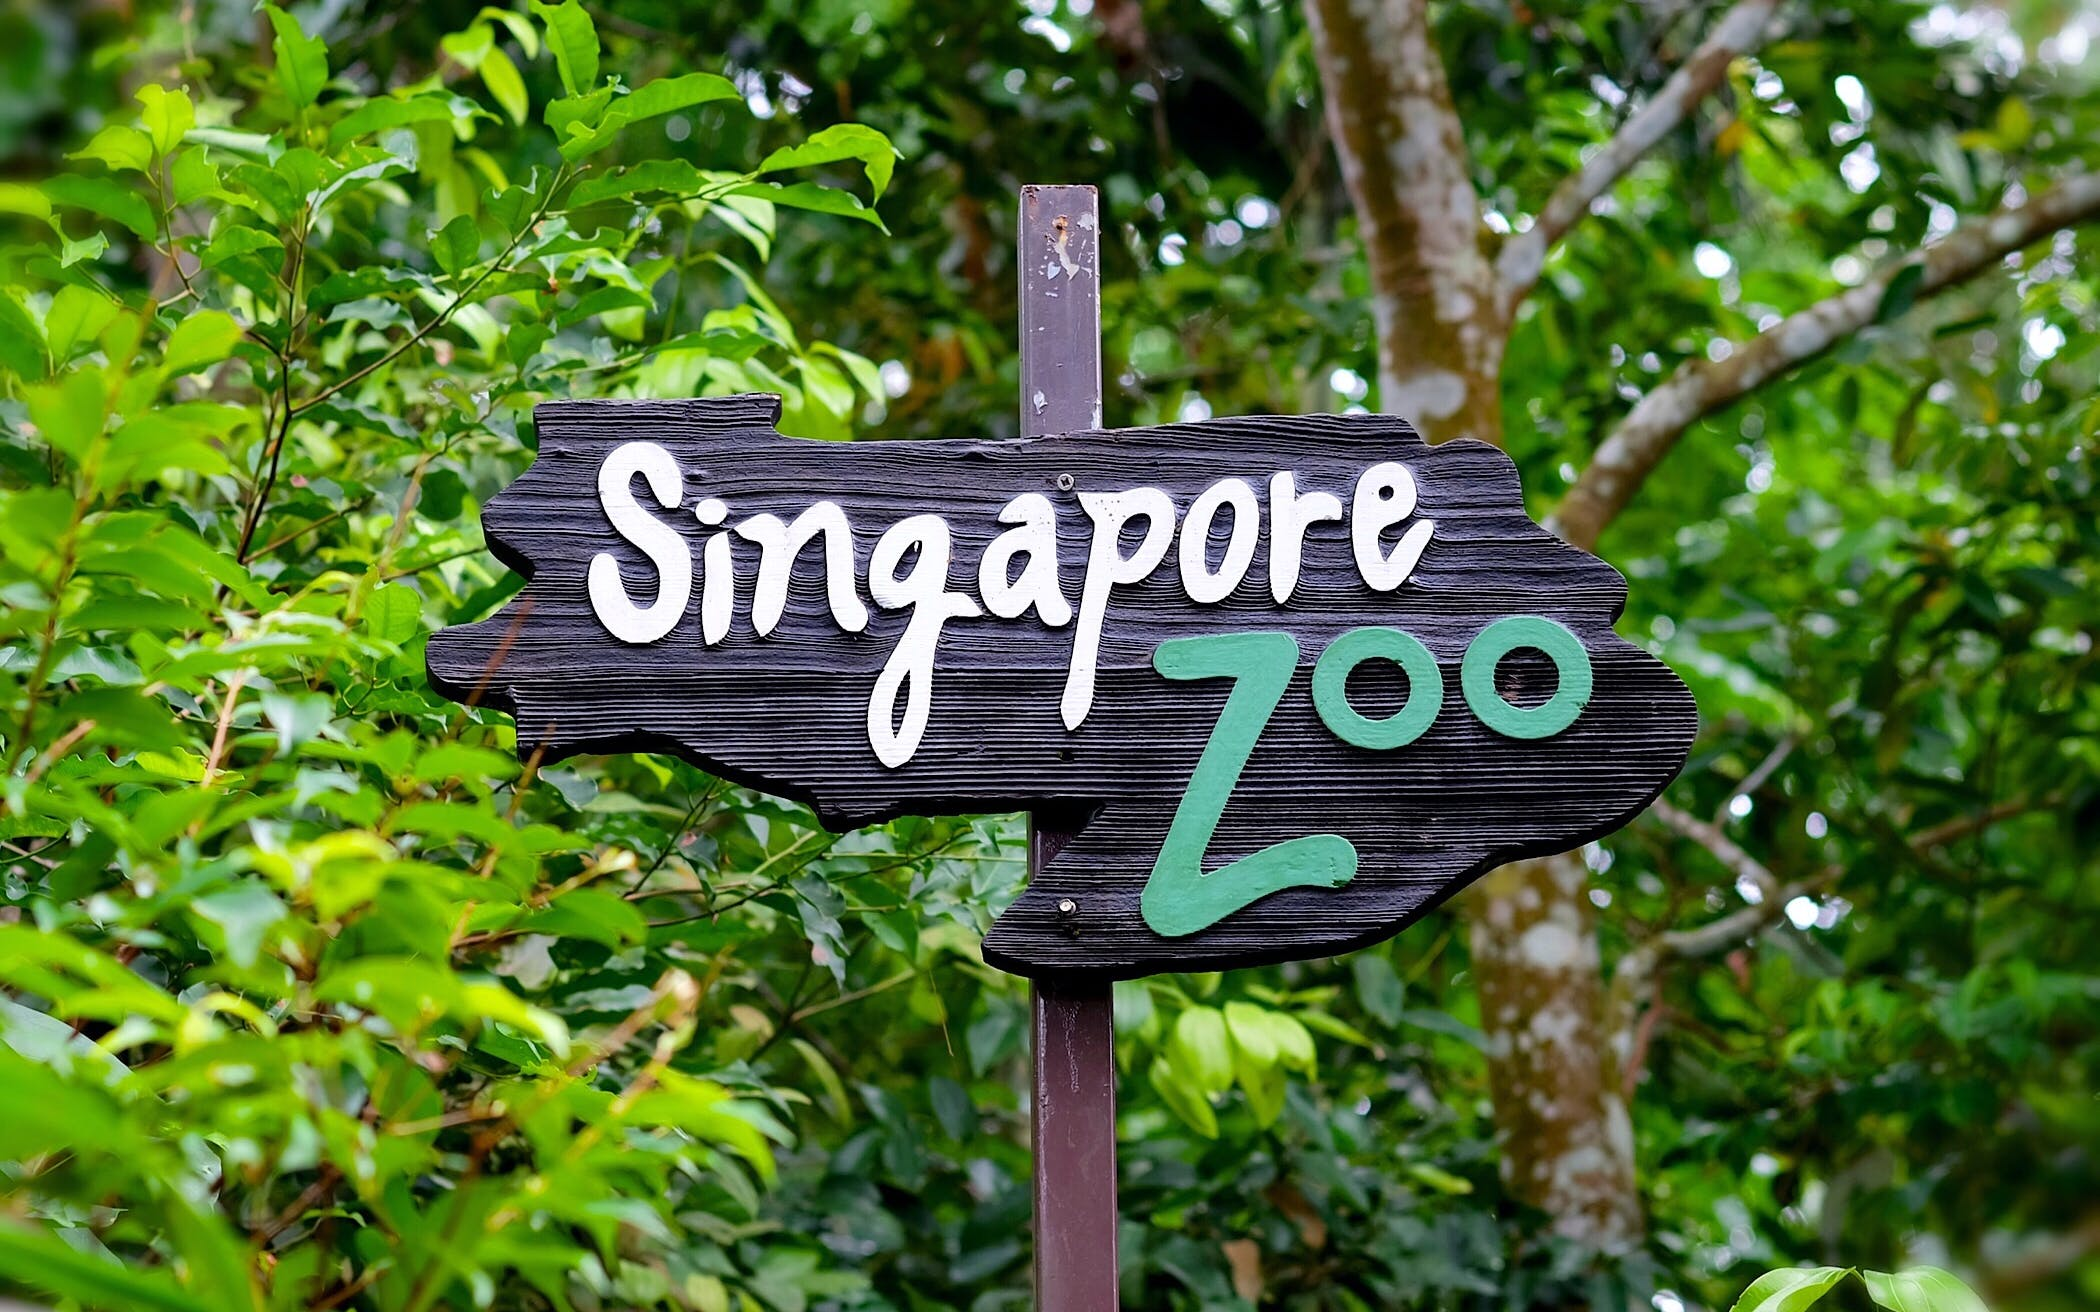 Singapore Zoo: Skip the Line Tickets with Tram Ride